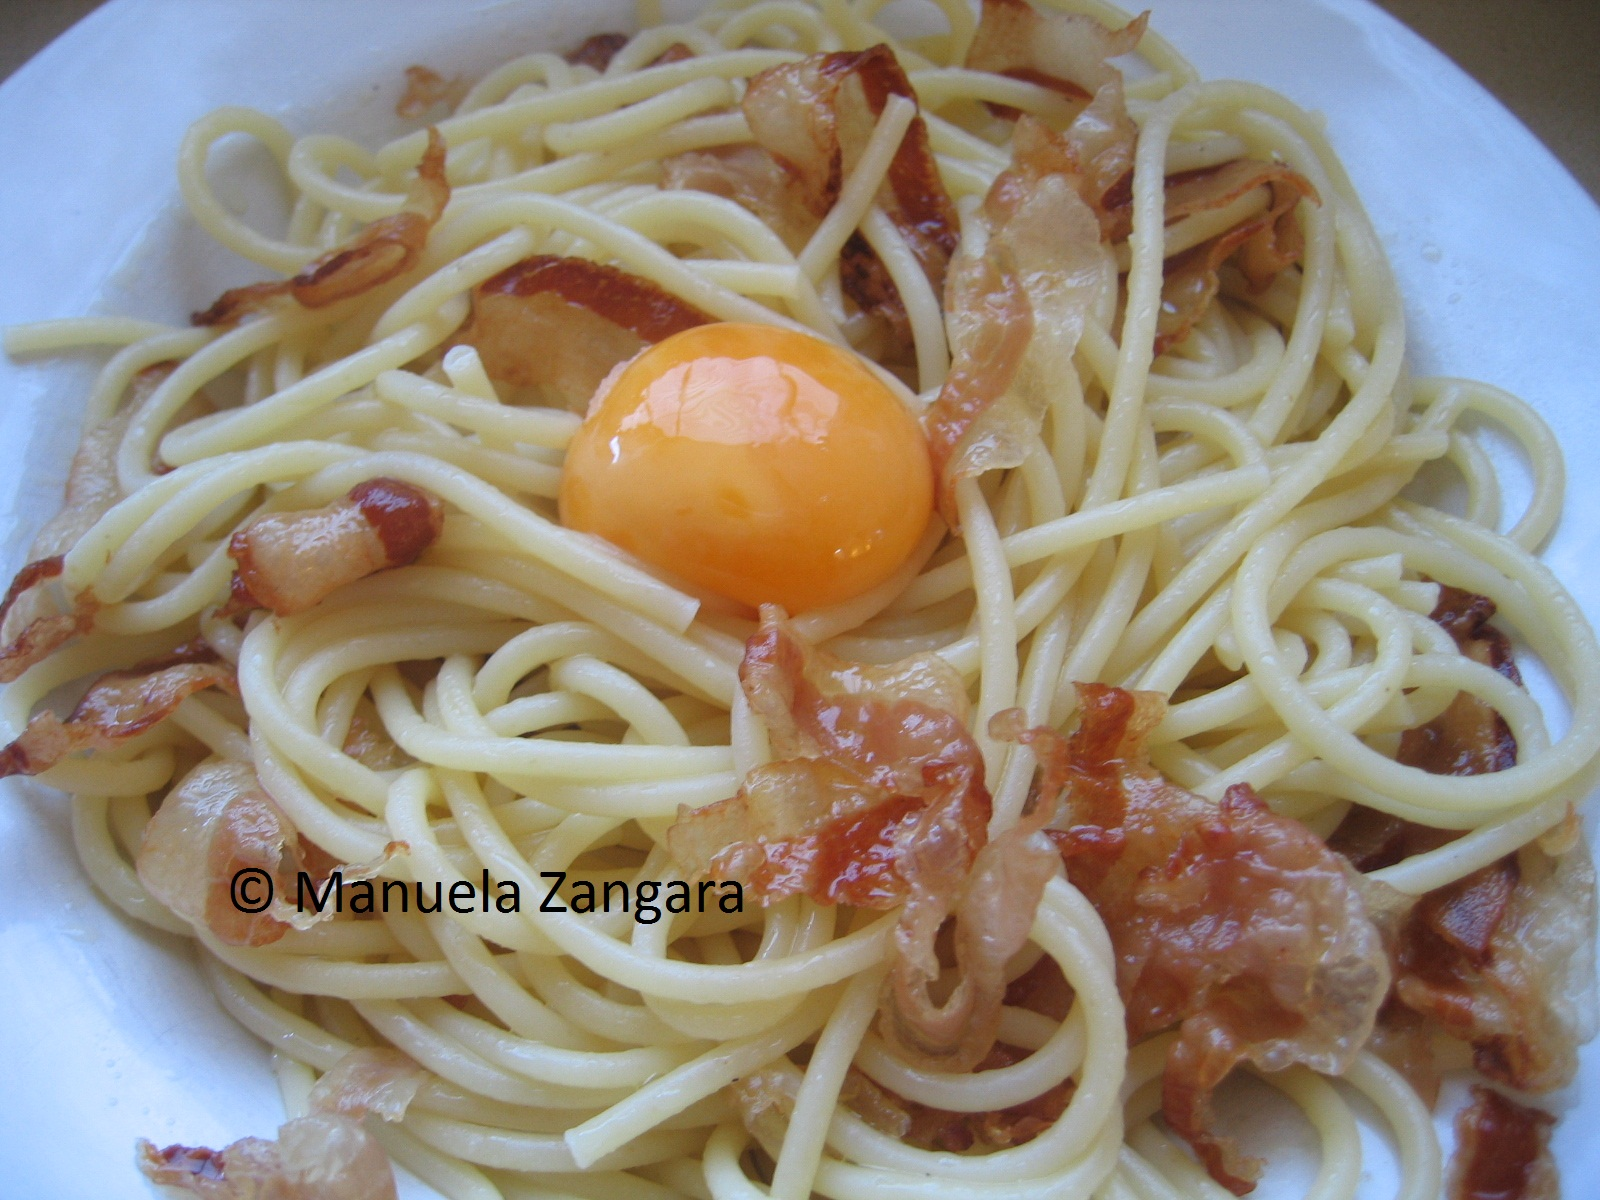 Spaghetti carbonara with egg yolk and guanciale